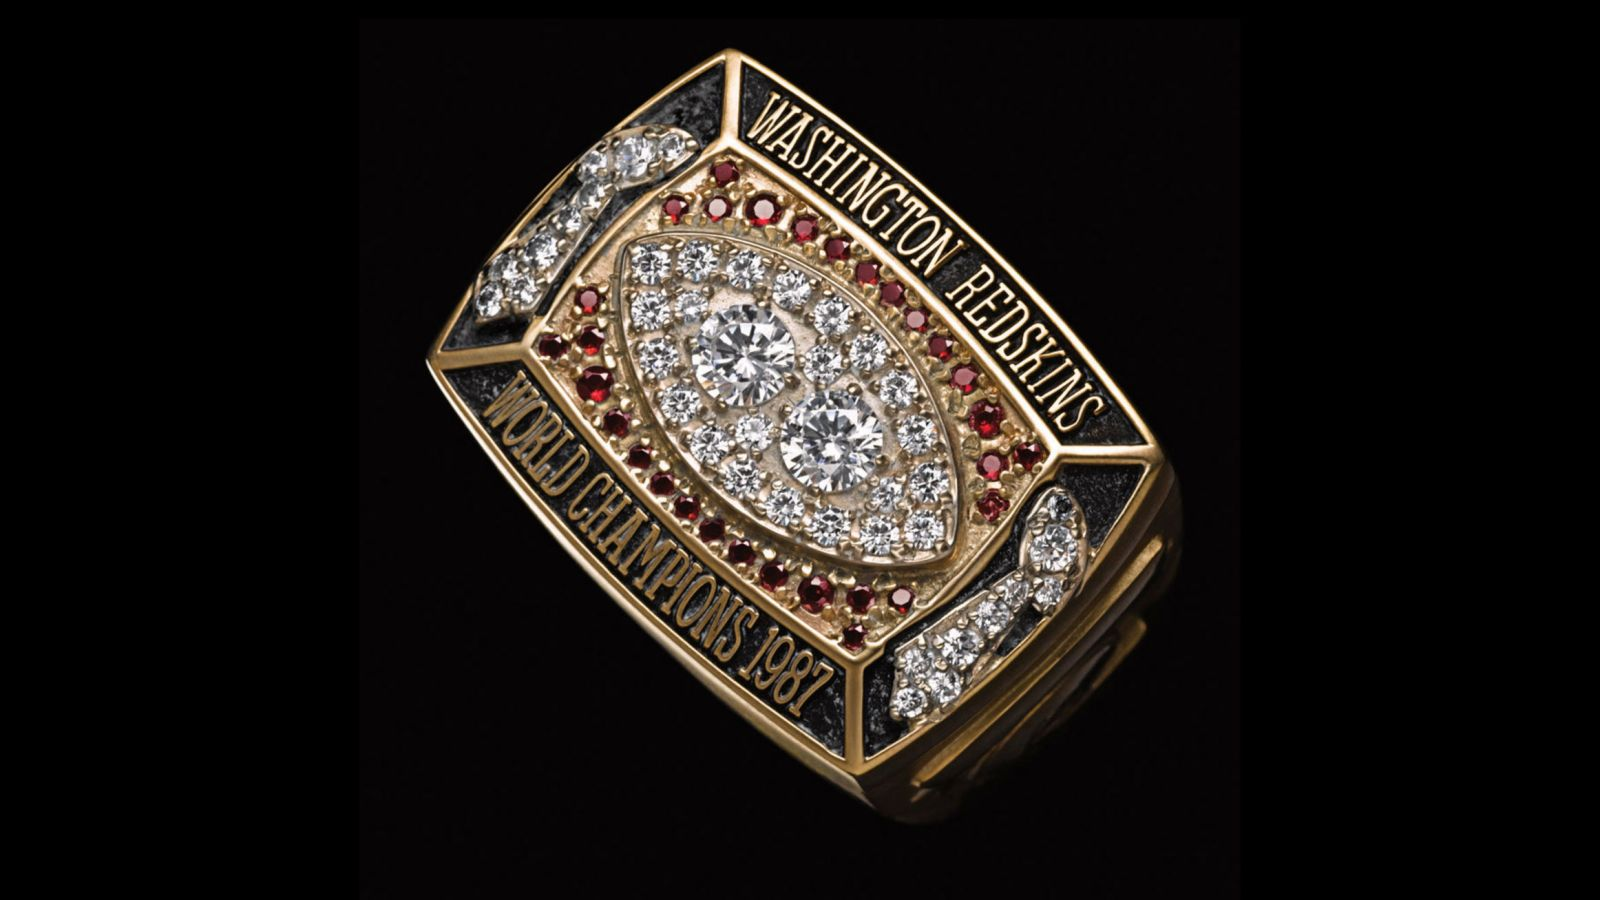 1987 Washington Redskins Super Bowl Championship Ring